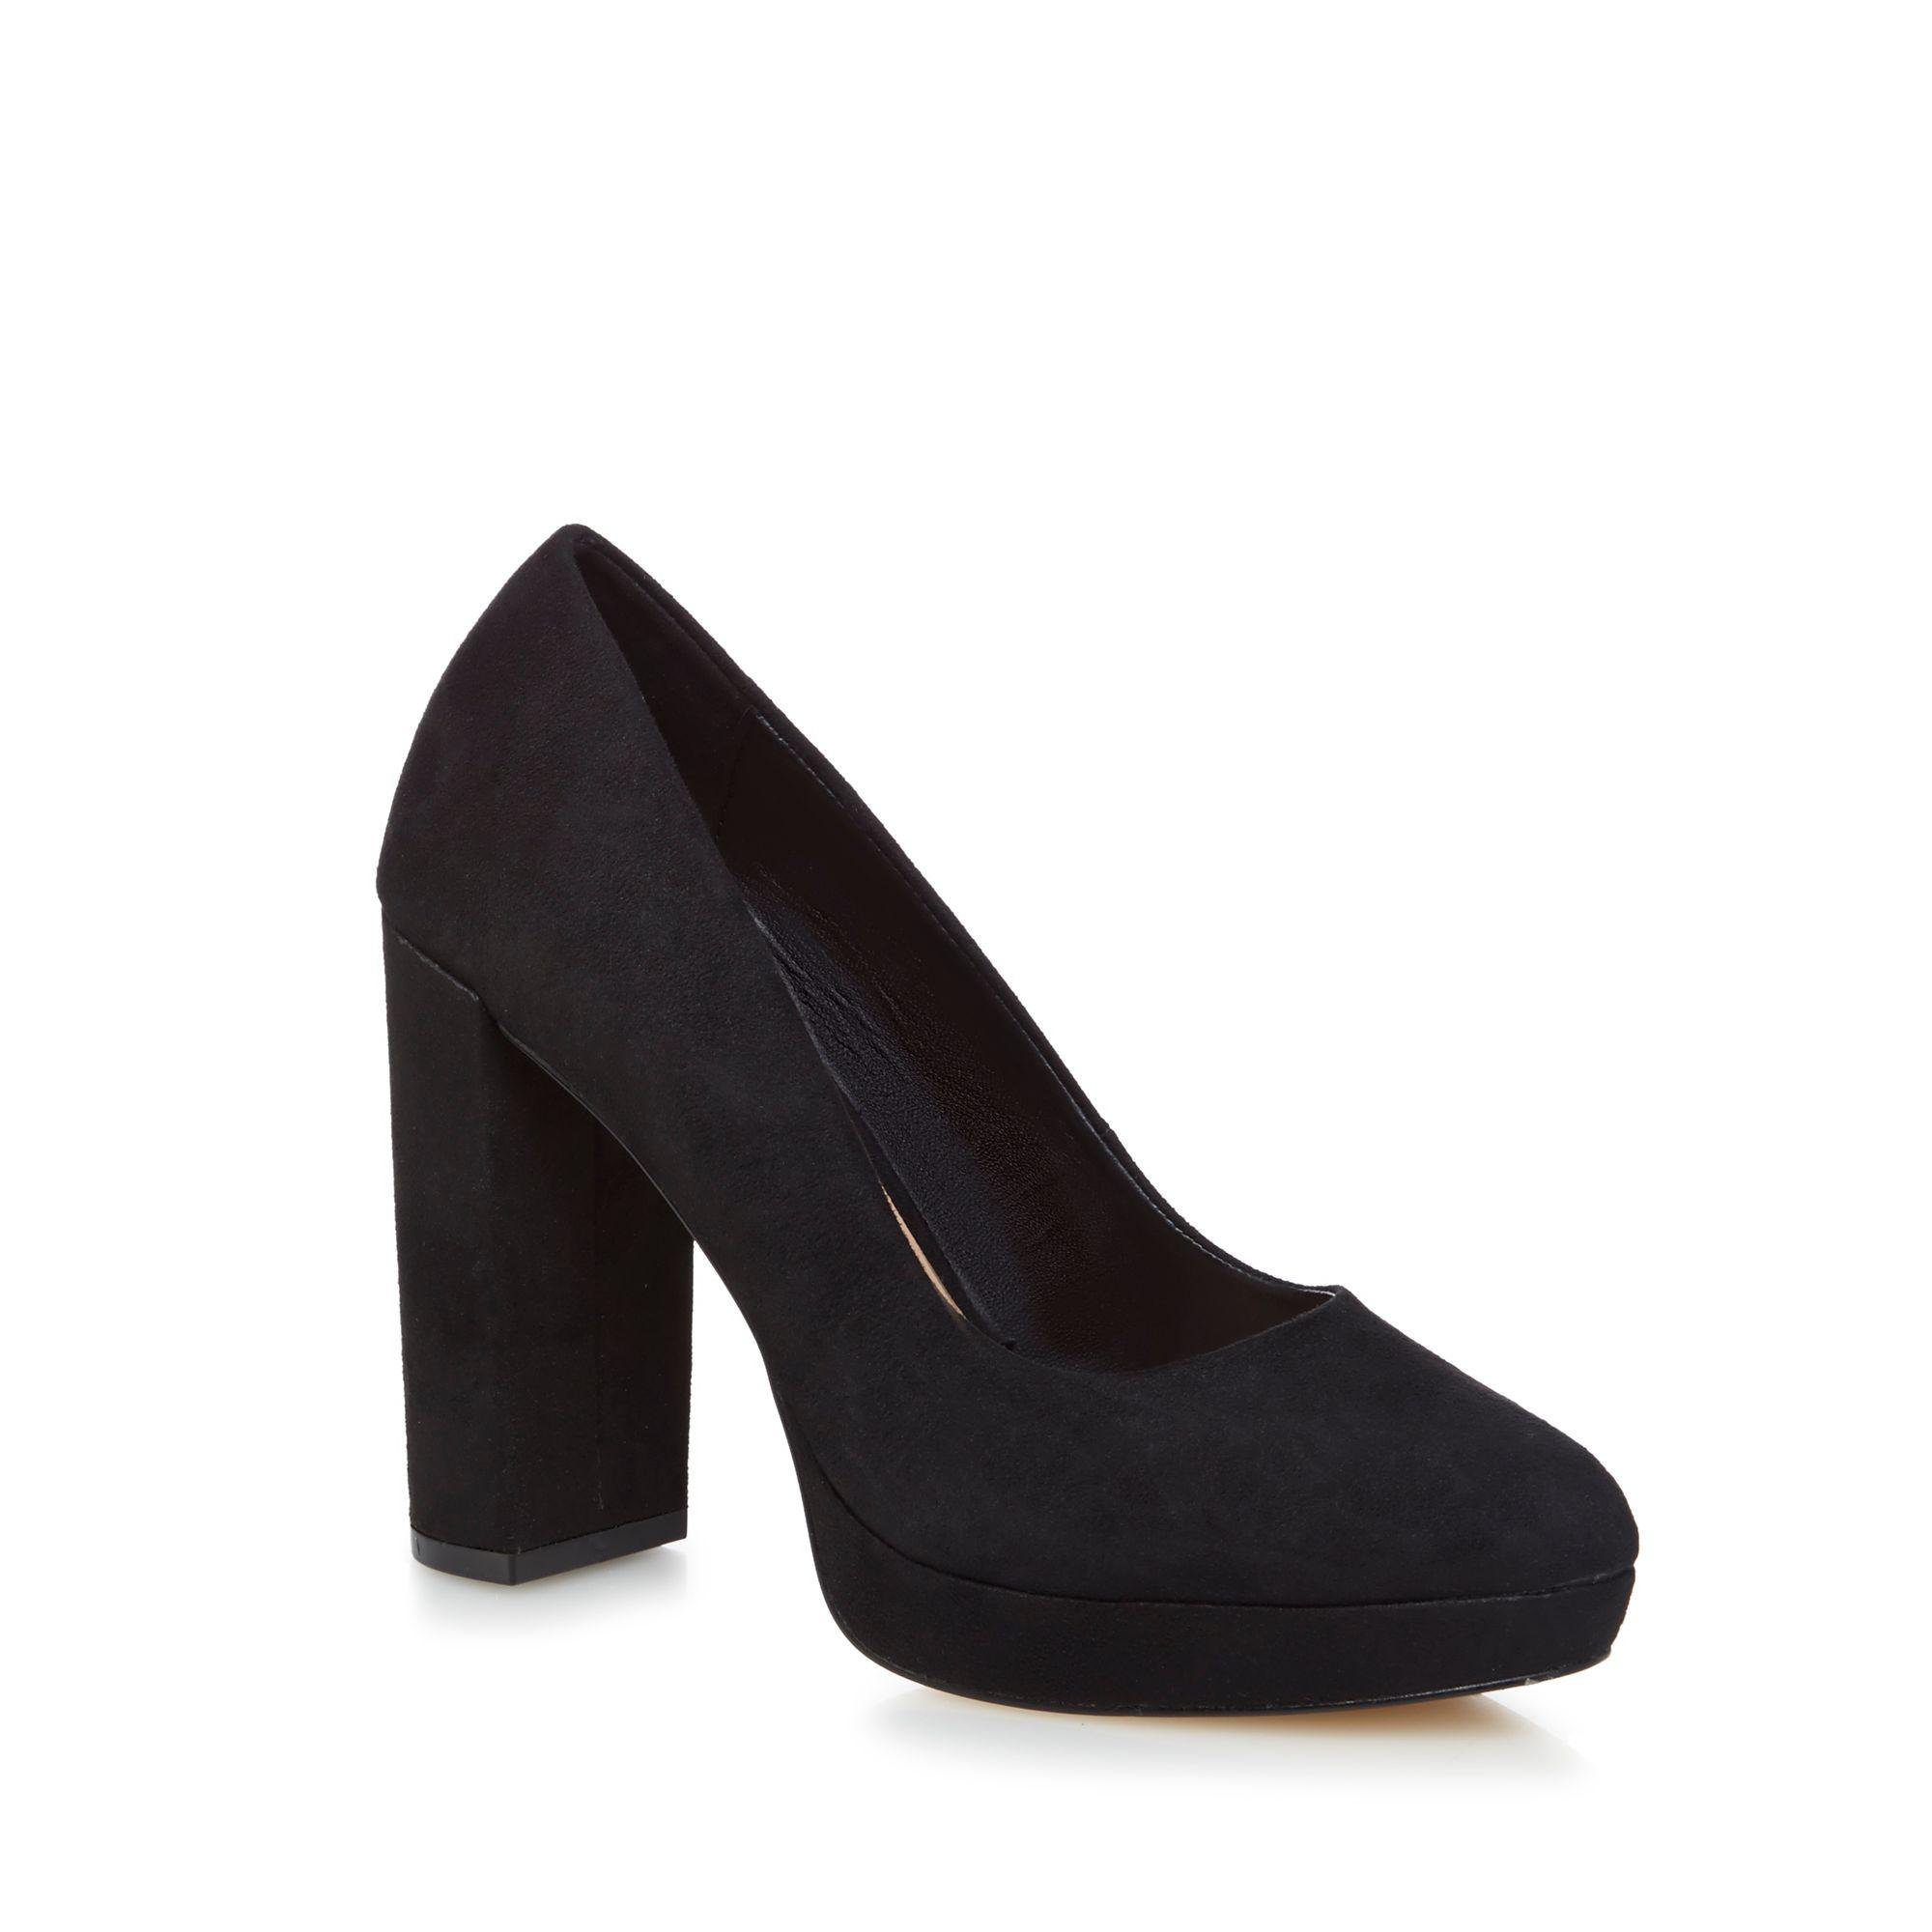 Black suedette 'Frantoio' high block heel court shoes free shipping how much PyODt